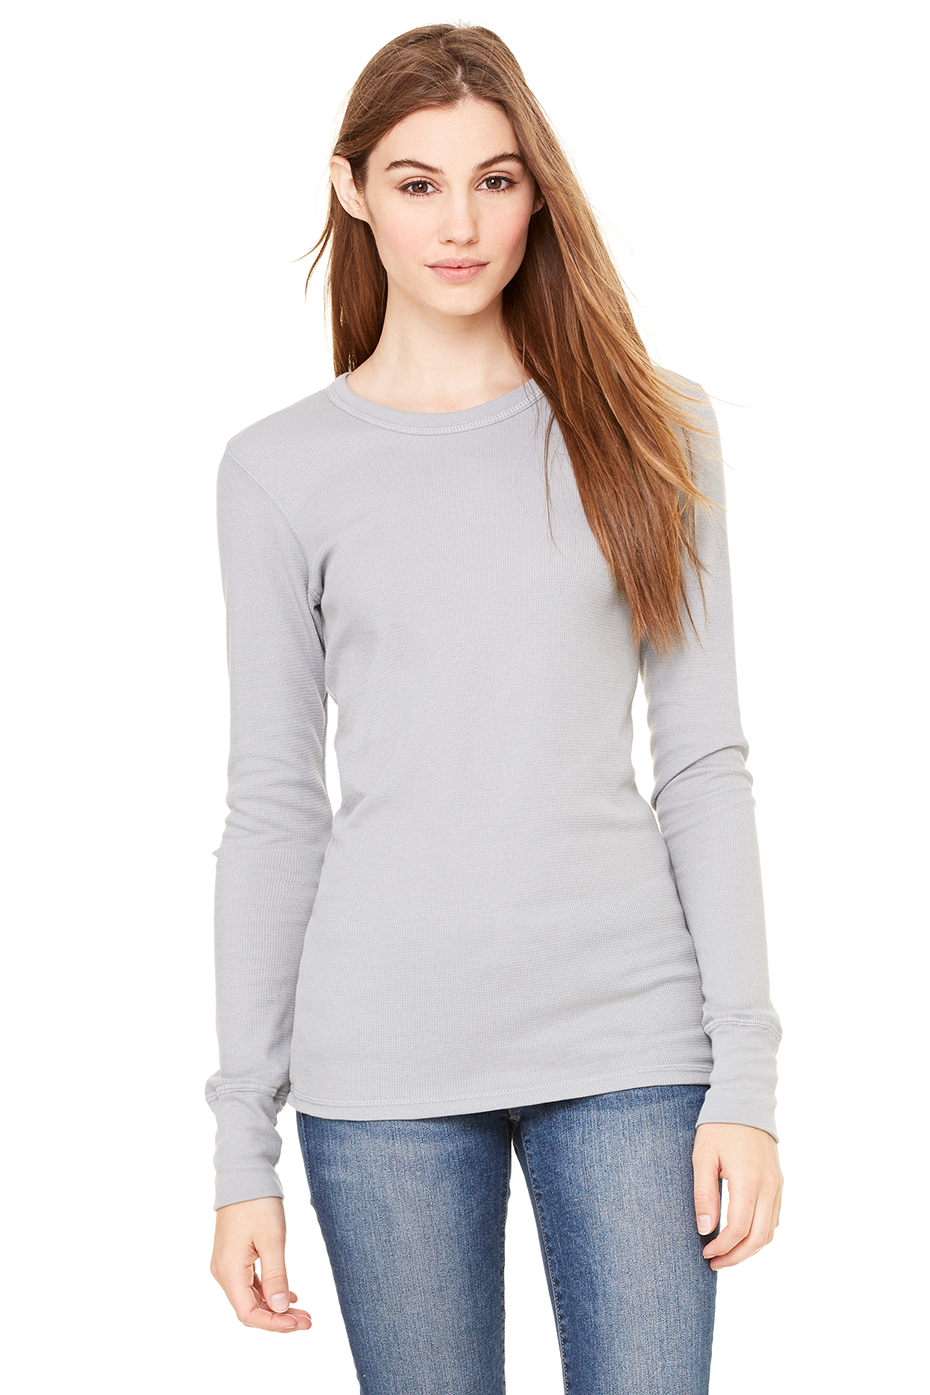 Women's Tees and V-Neck Tees from dnxvvyut.ml Anchor your wardrobe with quality Women's tees from dnxvvyut.ml From comfortable, casual styles in vibrant colors to pretty tops with special details, we've got the perfect Women's tees for every day of the week.